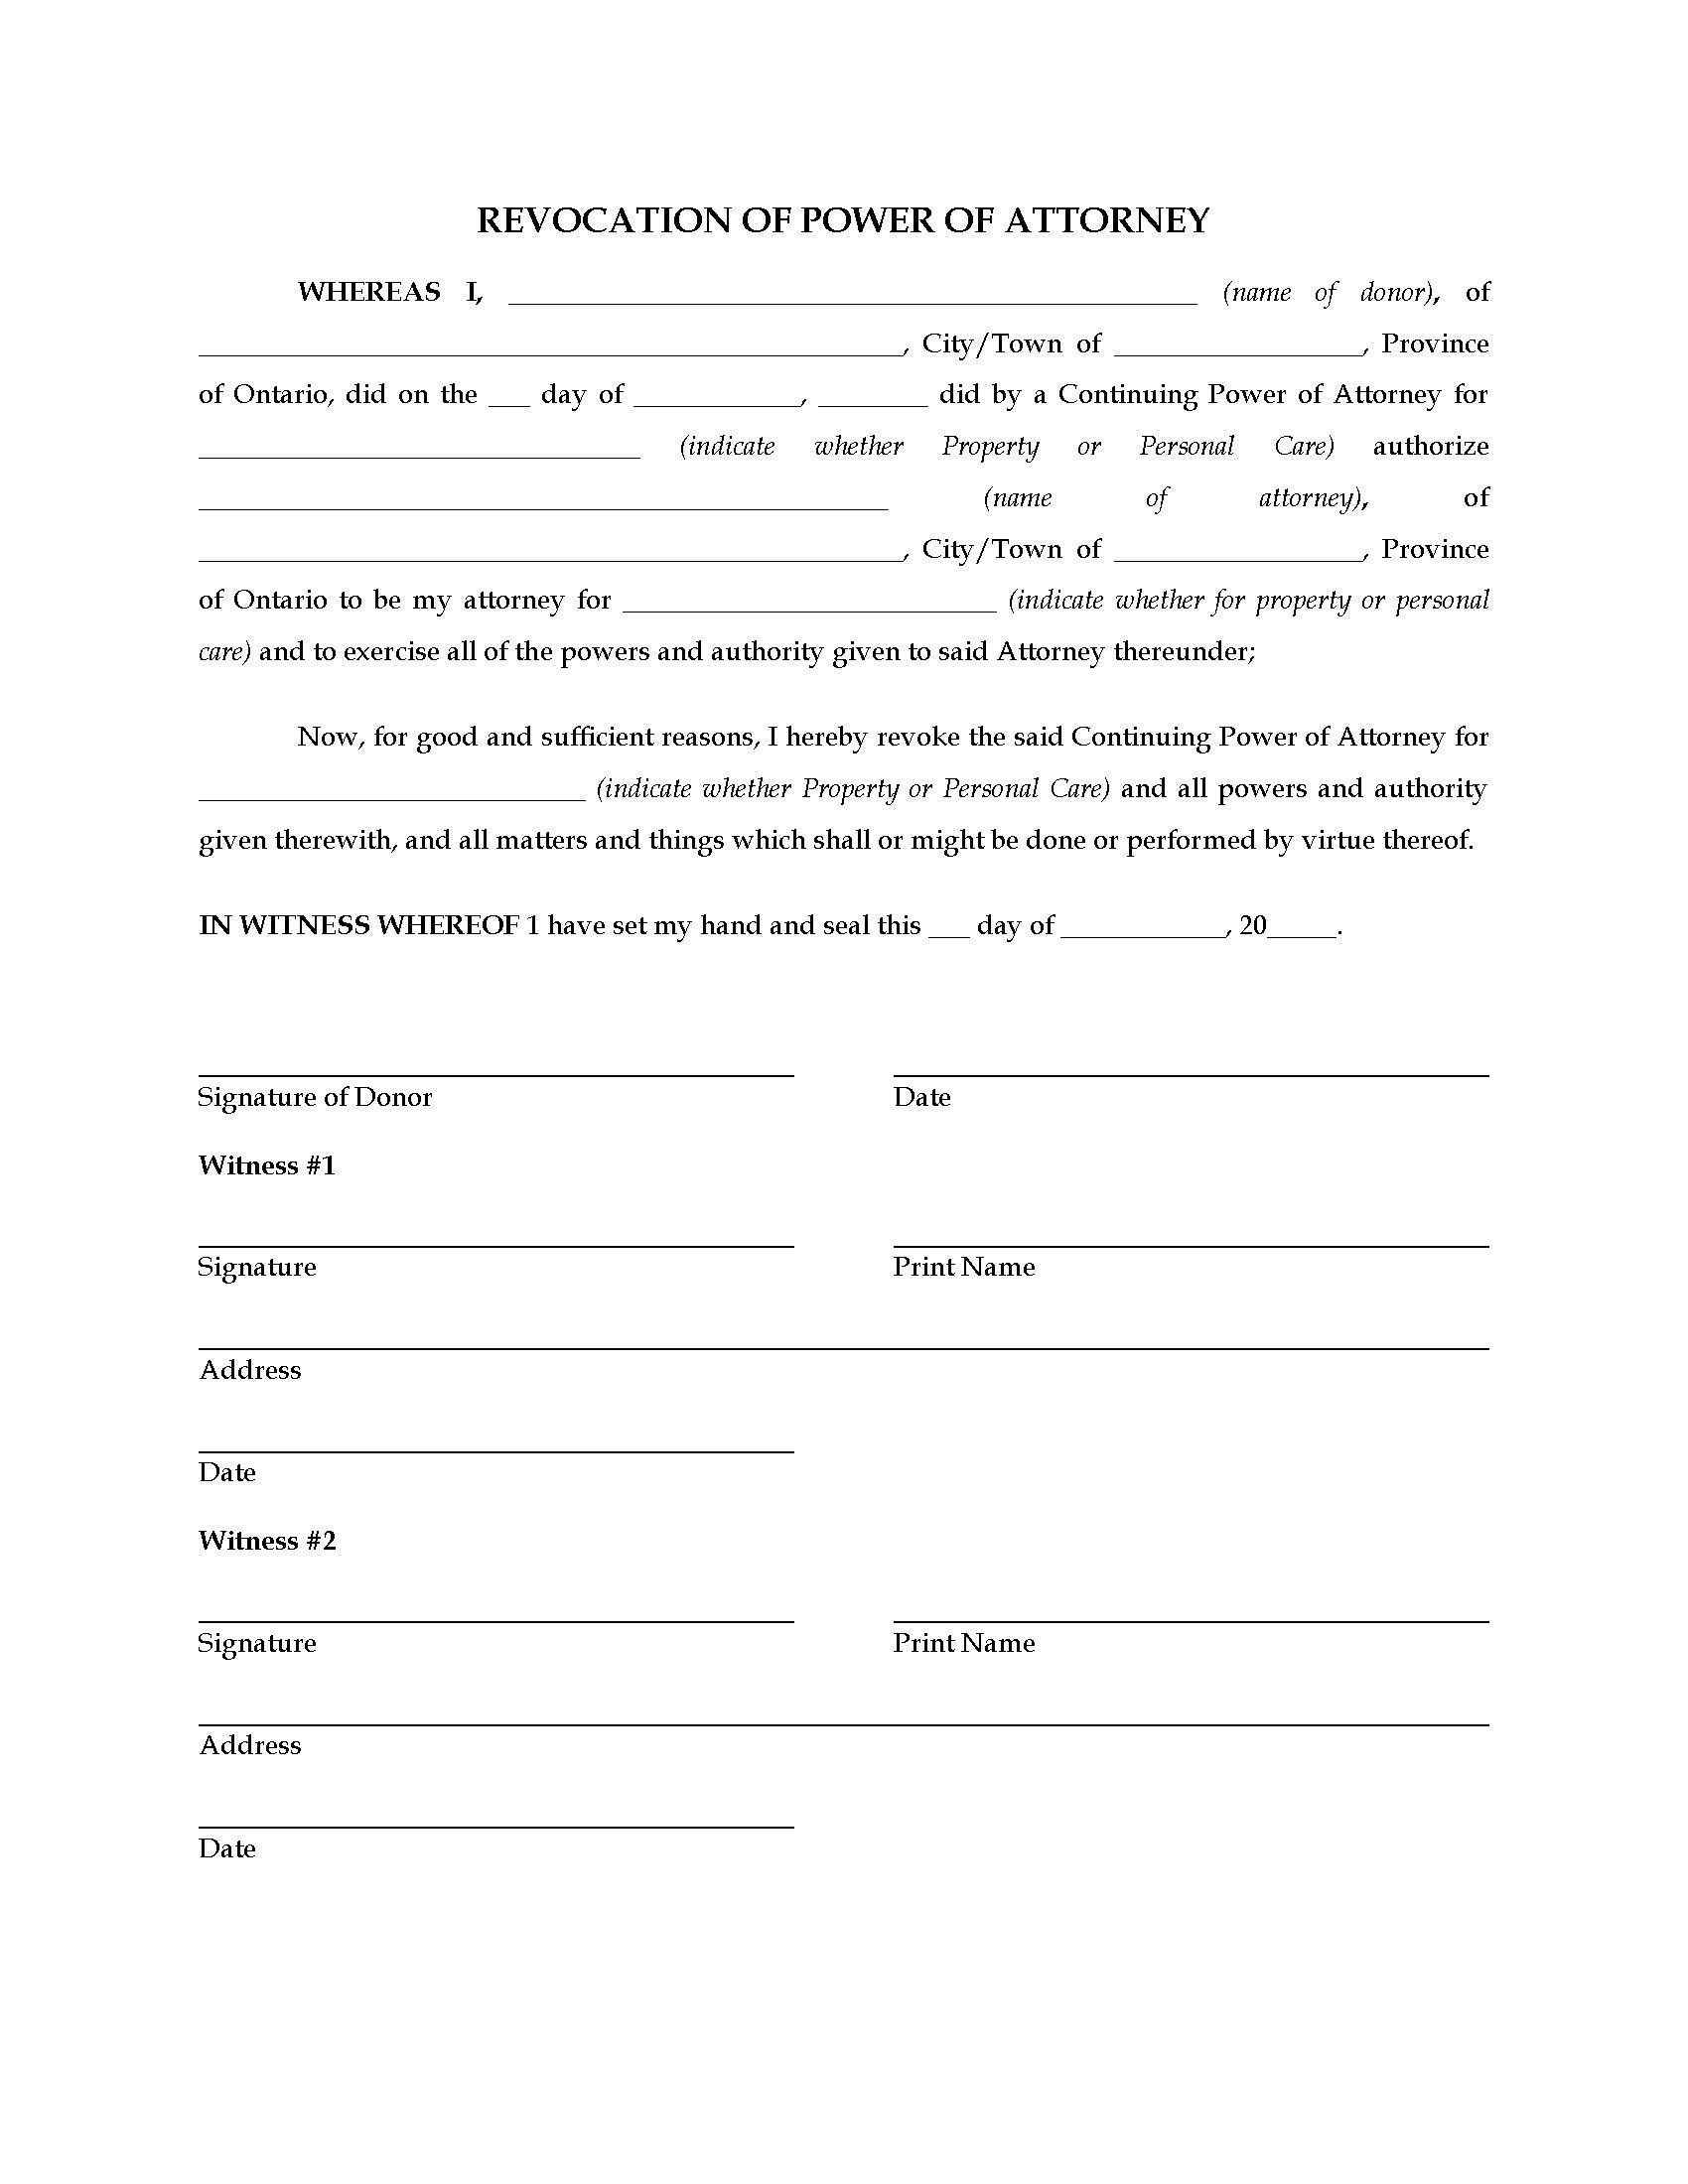 Ontario Revocation Of Power Of Attorney Letter Templates Templates Free Design Lettering